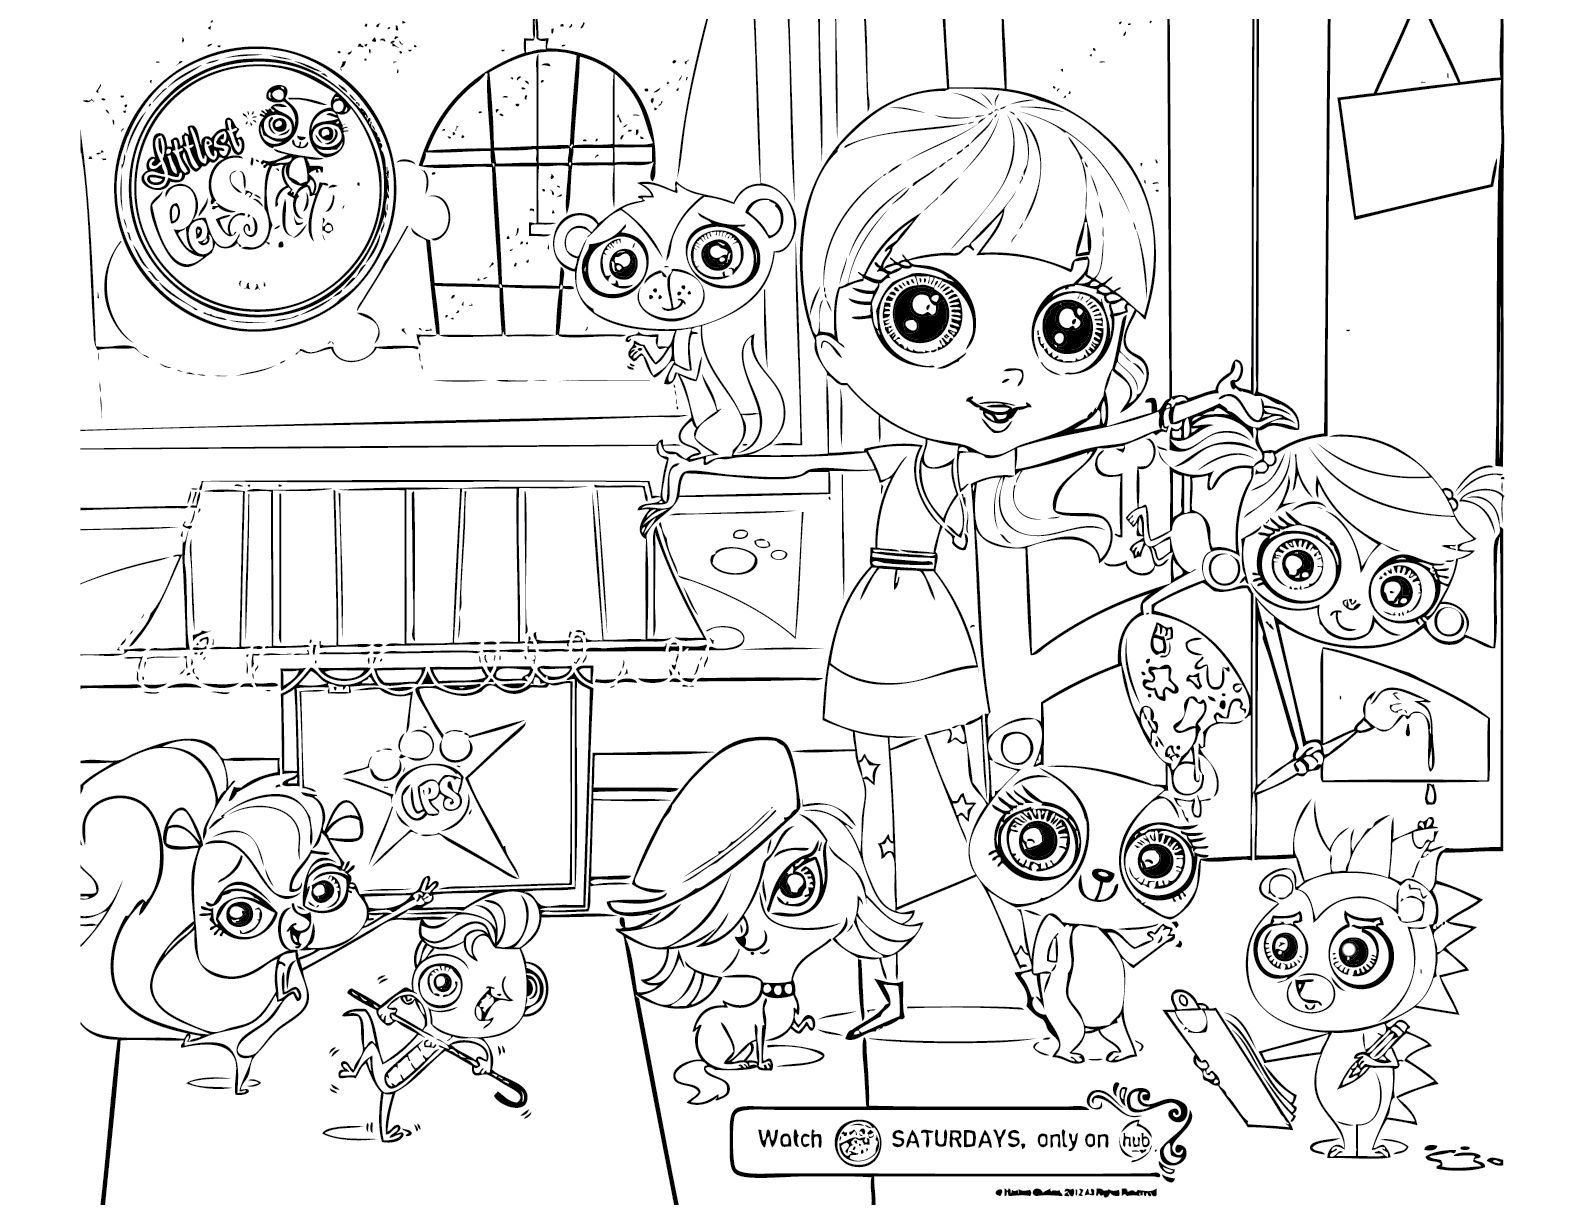 My Littlest Pet Shop Coloring Pages Free Printable Coloring Pages Coloring Pages For Kids Coloring Pages Cartoon Coloring Pages